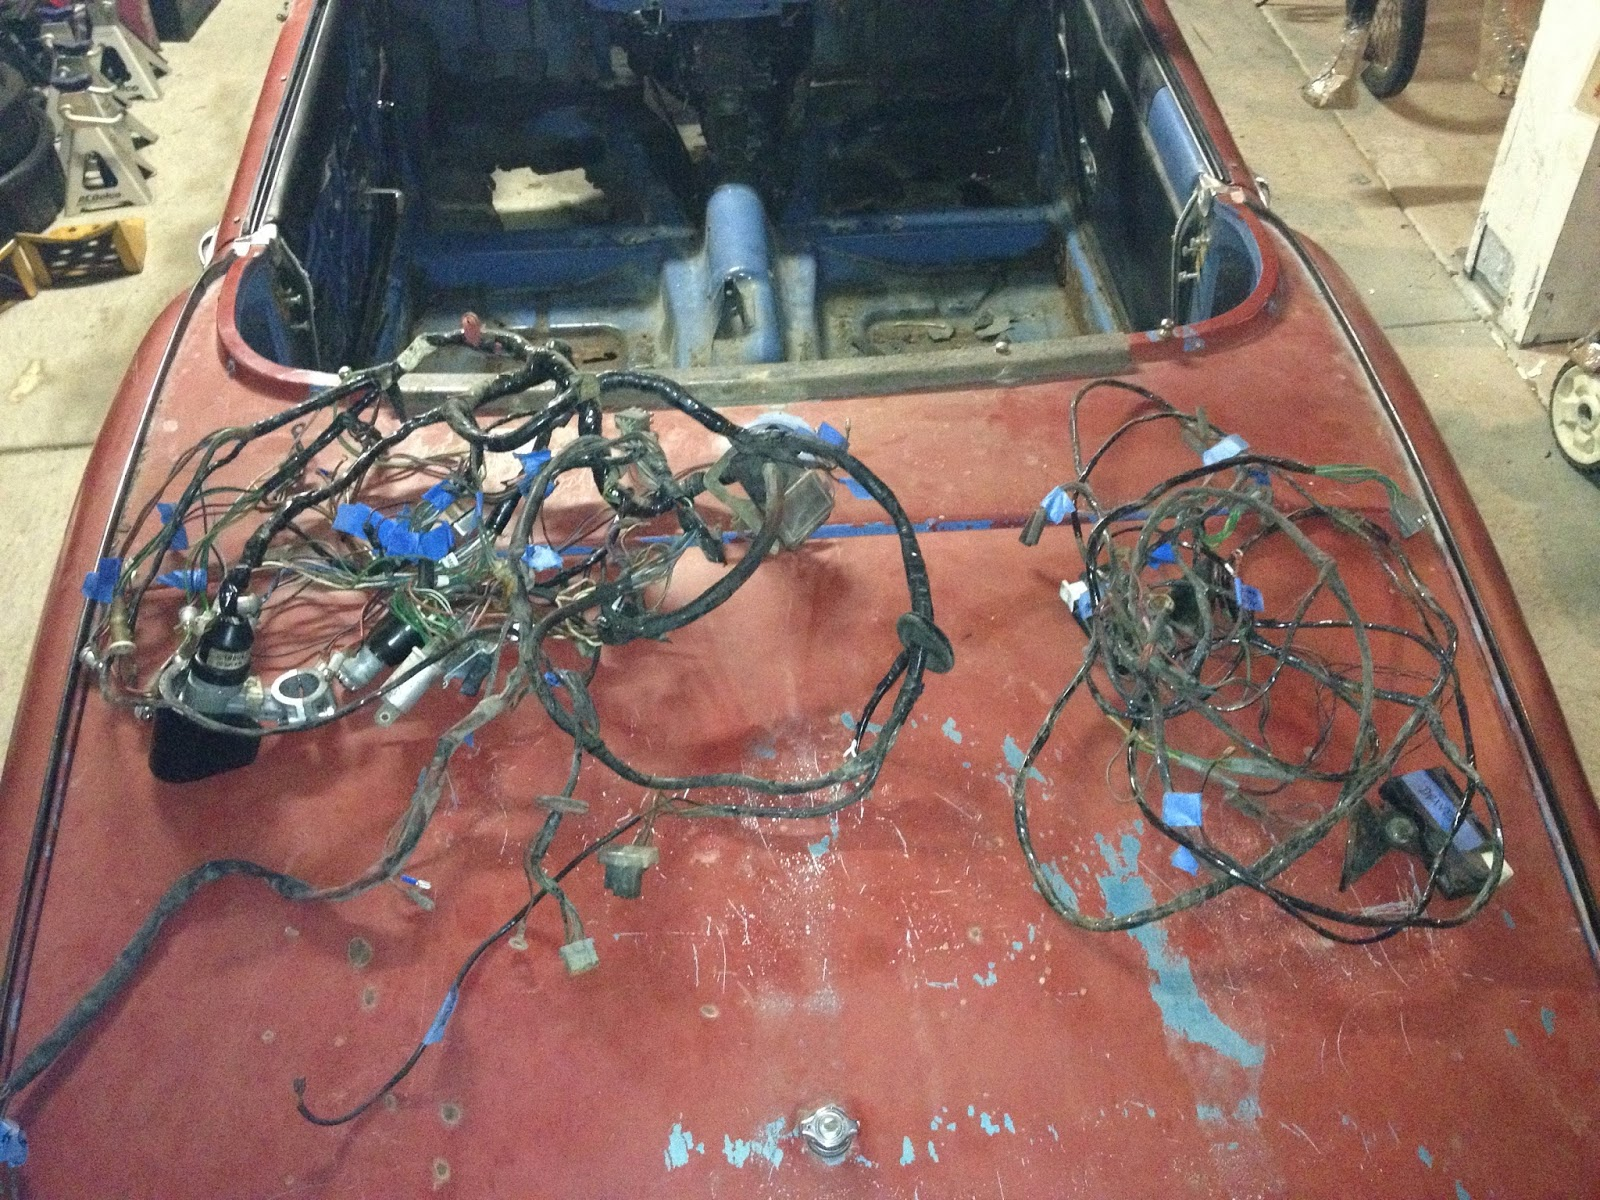 small resolution of the wiring harnesses are out the one on the right is the rear harness with the seatbelt switches while the one on the left is the main harness with the